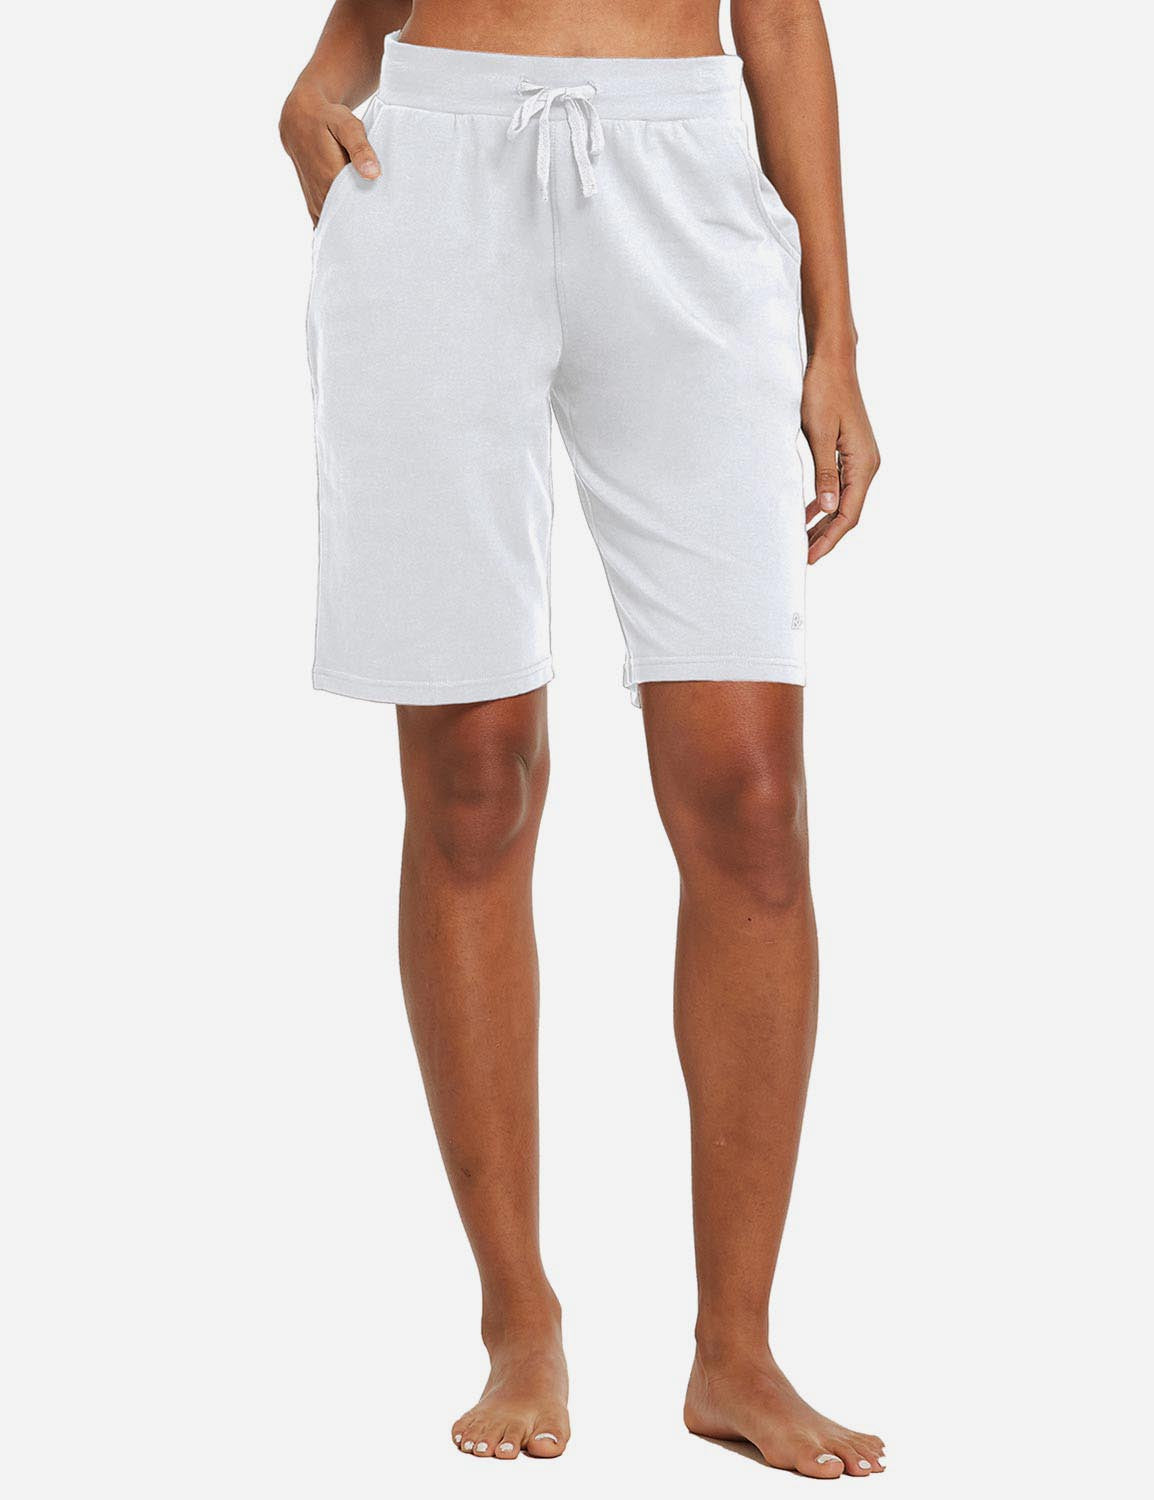 Baleaf Womens Cotton Straight Leg Pocketed Weekend Bermuda Shorts White Front